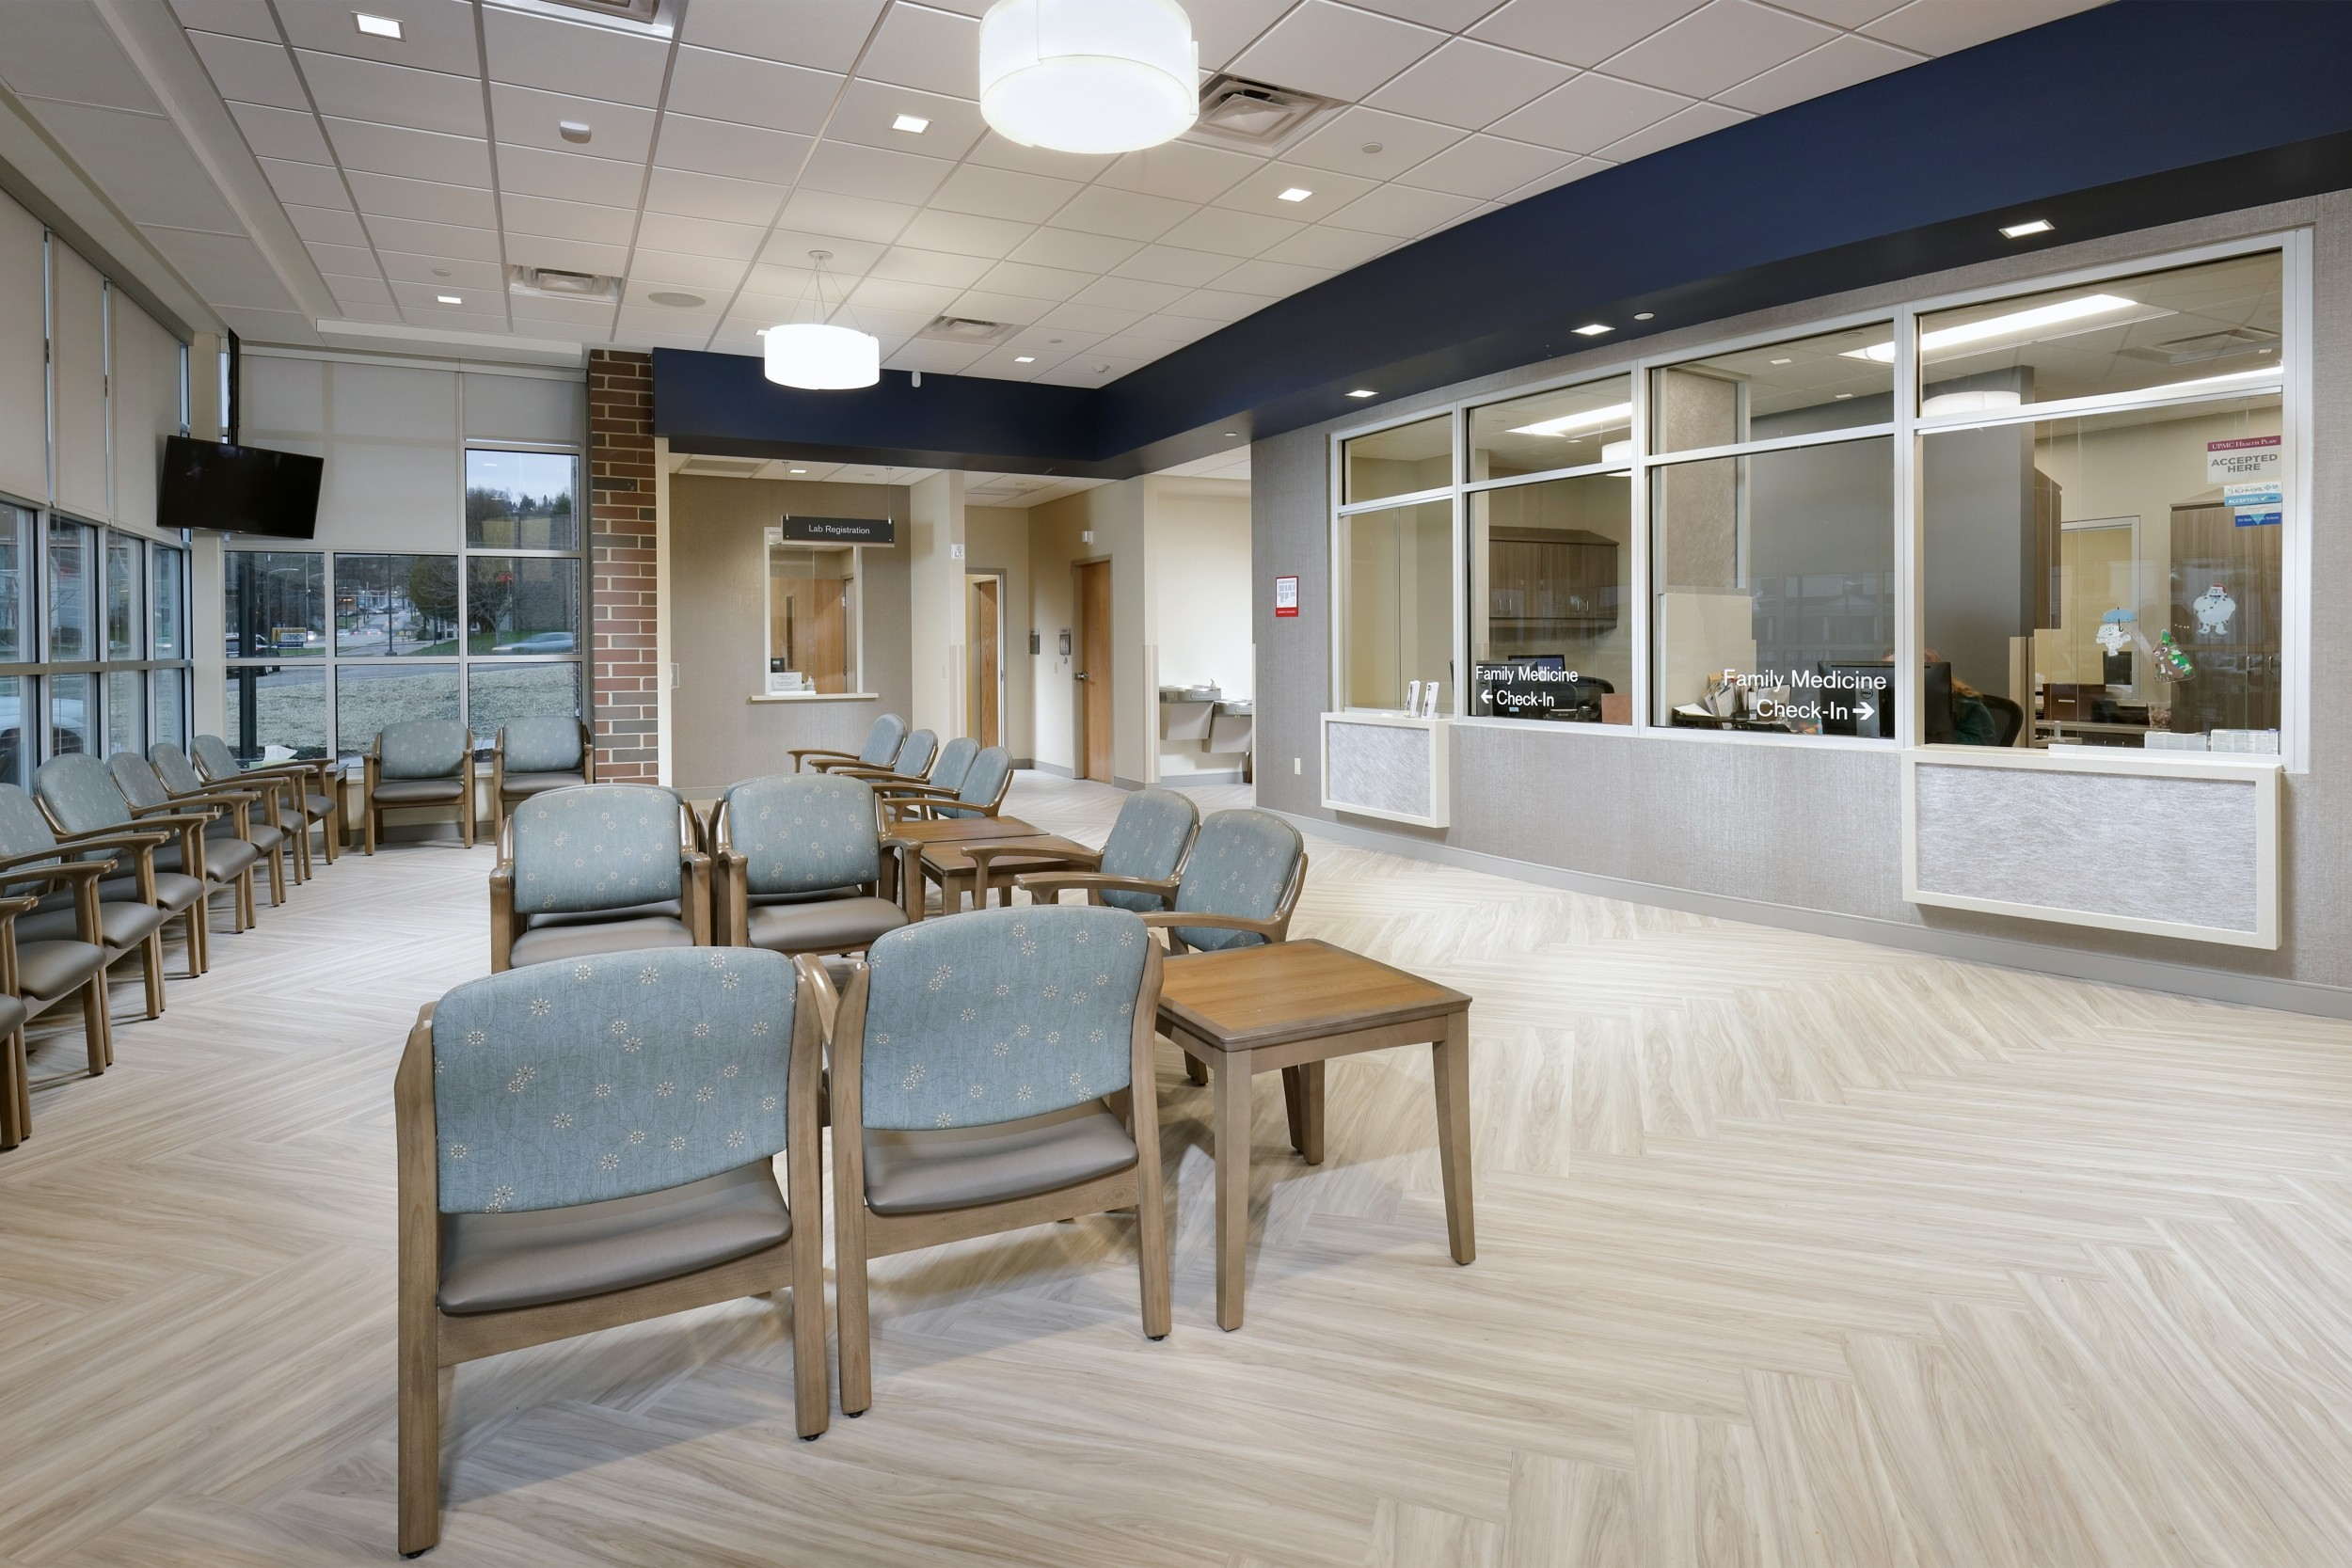 Canonsburg Outpatient Center Waiting Room